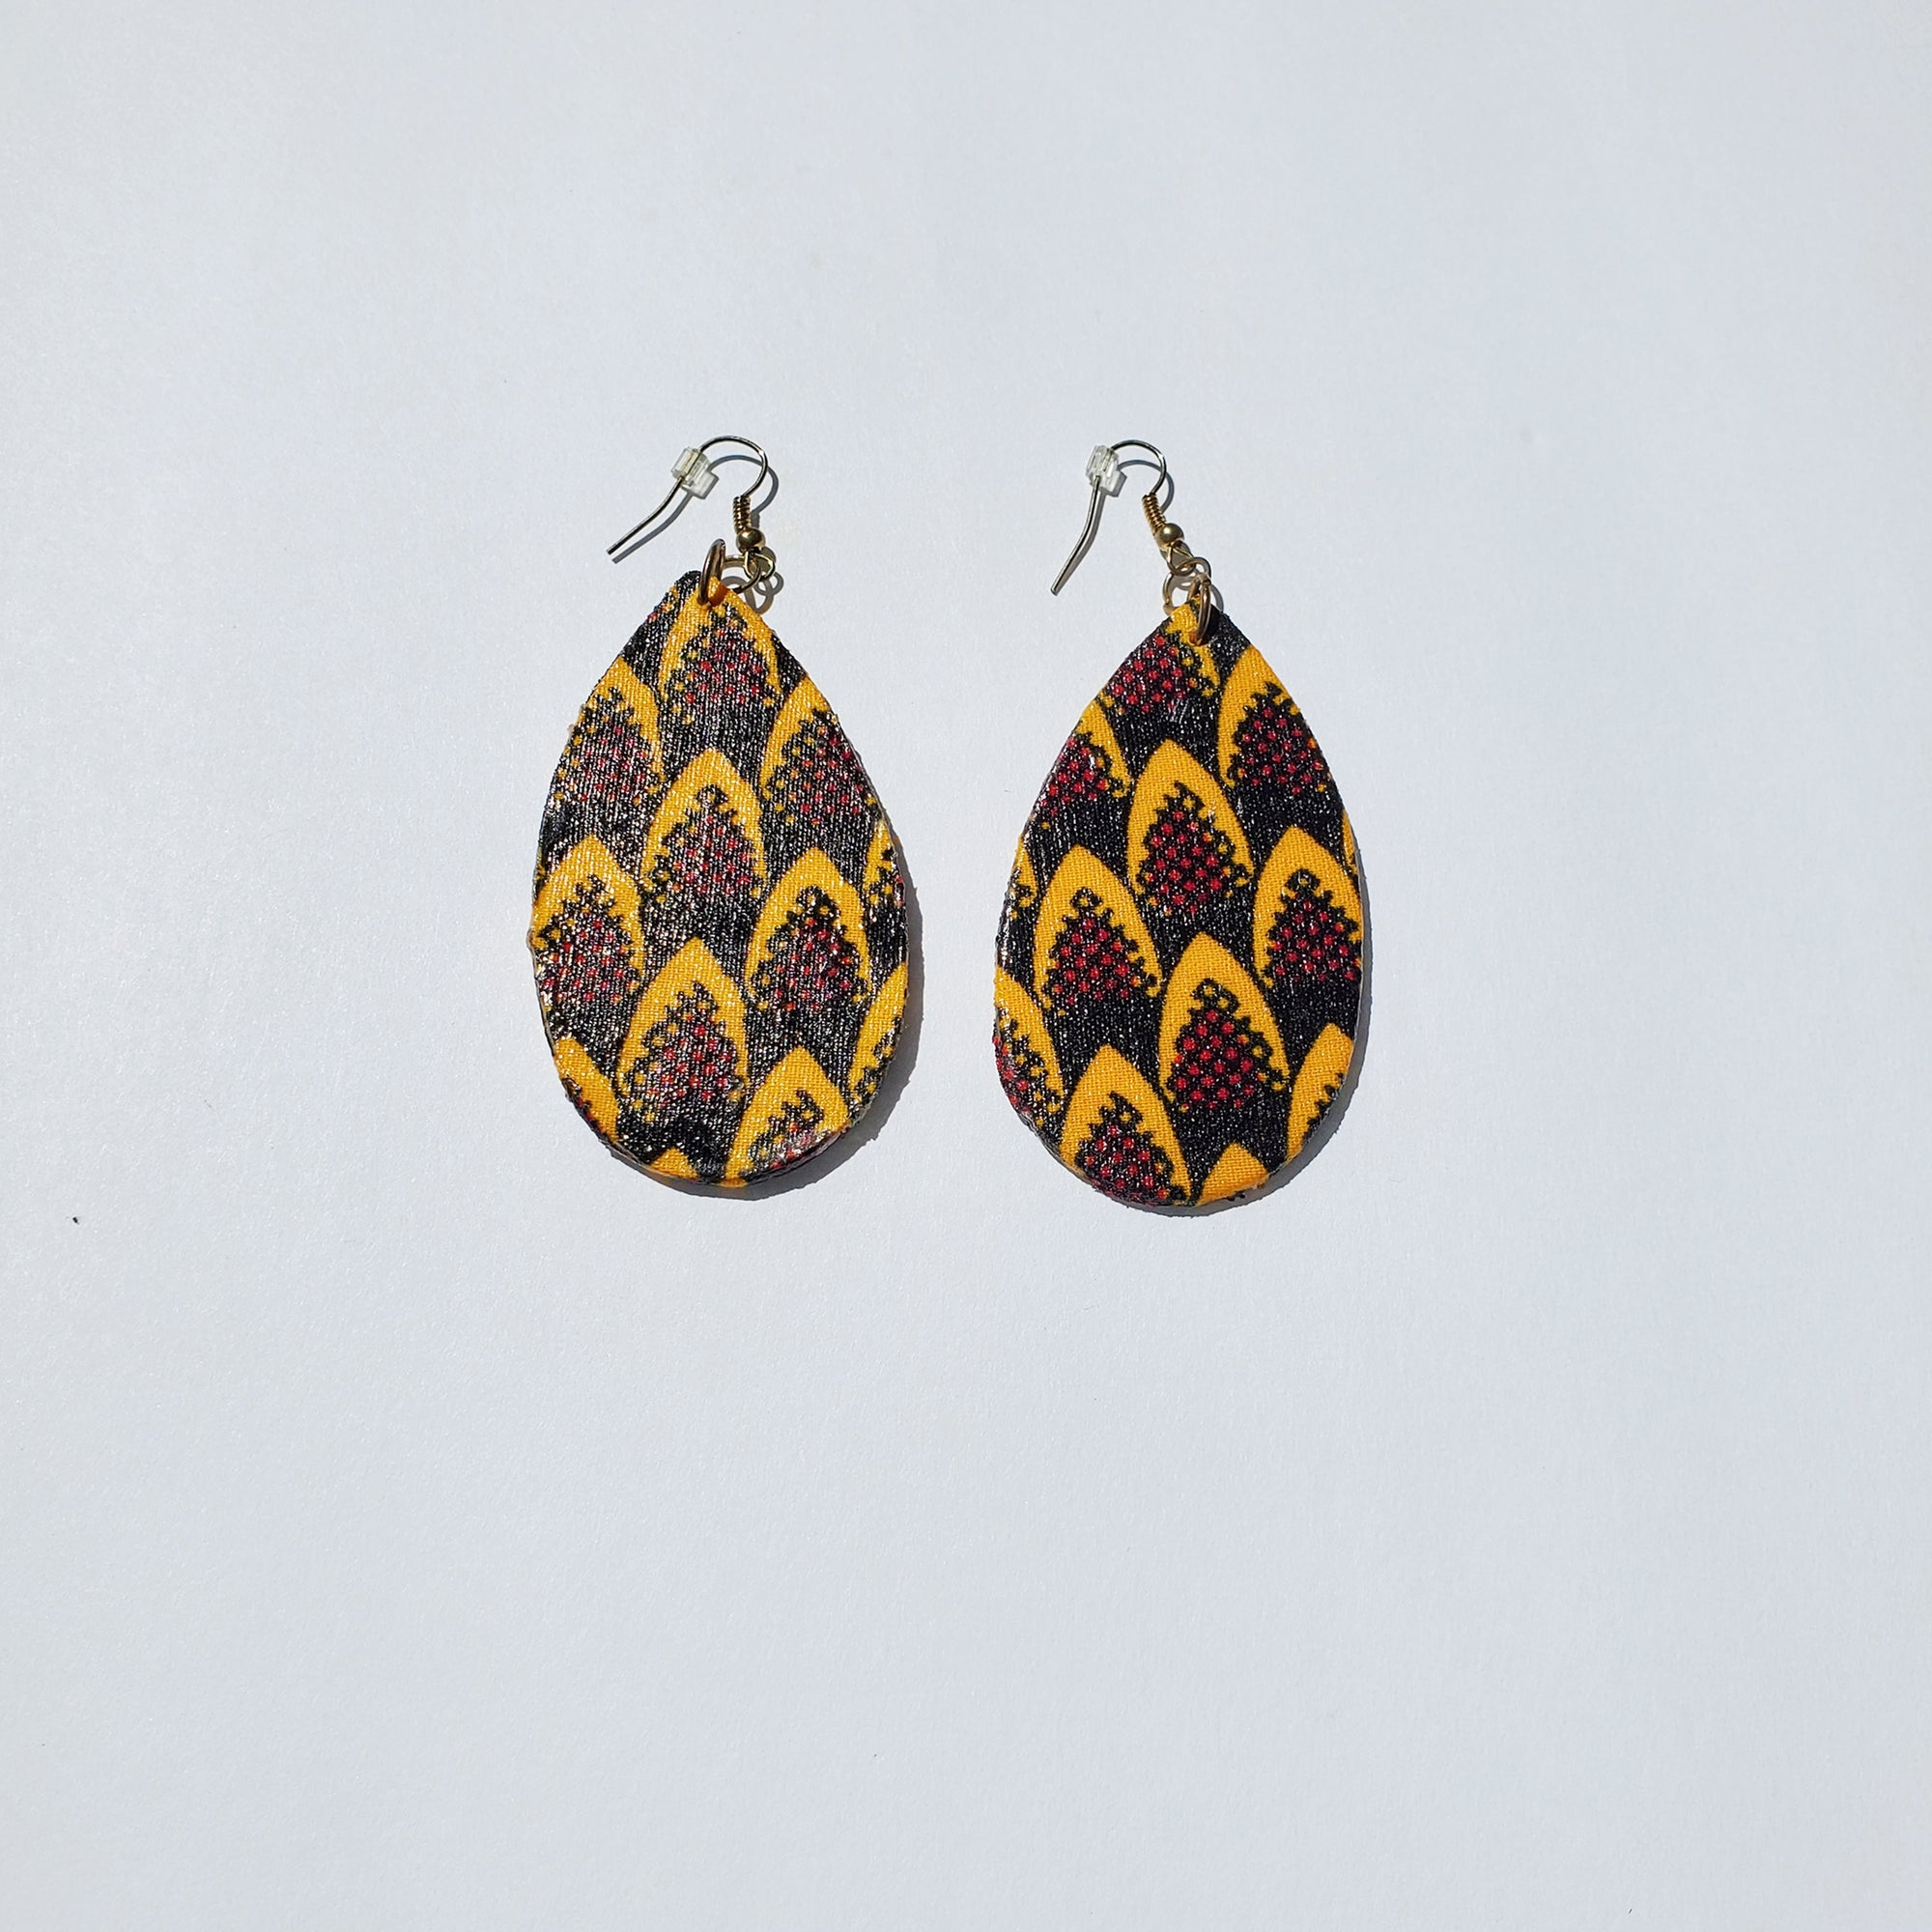 African/ Ankara Tear Drop Earrings(hooked) - Black/Orange/Red Print